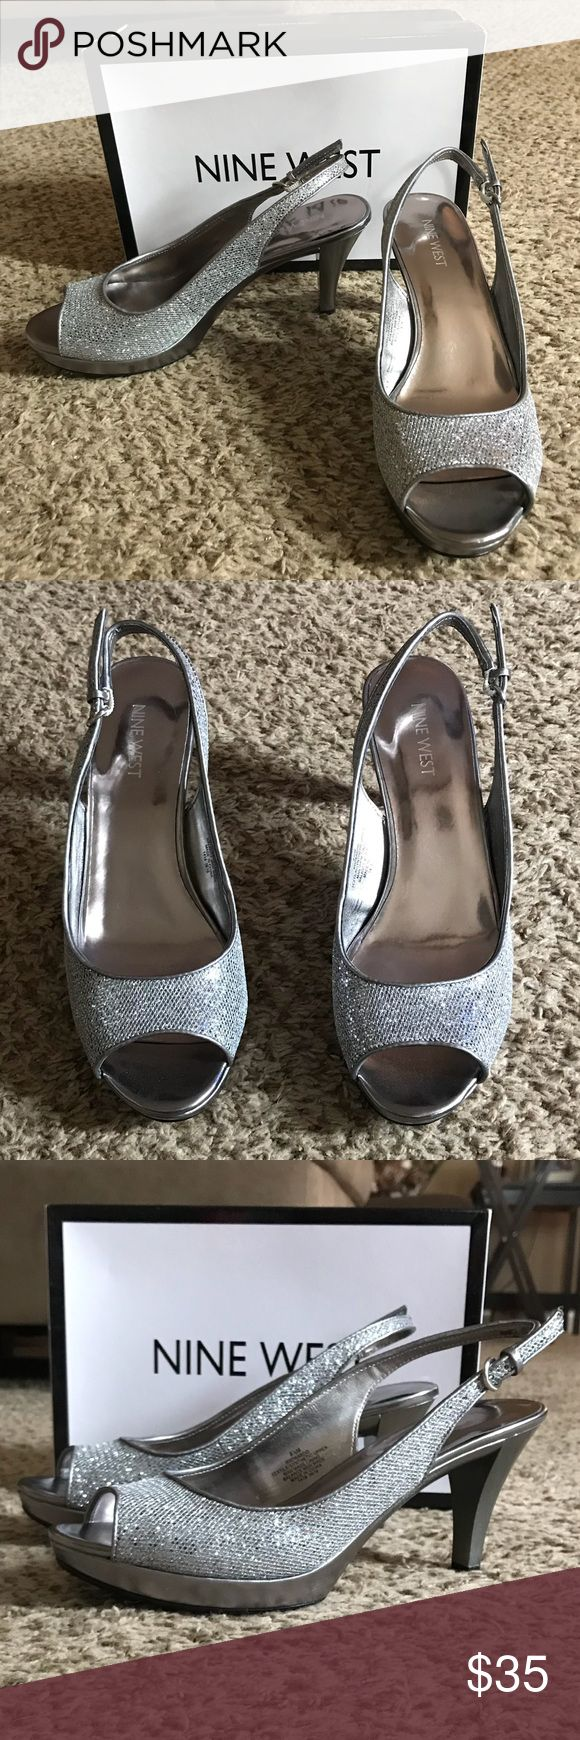 Nine West Karoo Silver Peep Toe Slingback Nine West Karoo Silver Peep Toe Slingback Size 8 1/2. 3 1/2 inch heel. Only worn one other time for a wedding! In near perfect condition. Very comfortable. Nine West Shoes Heels